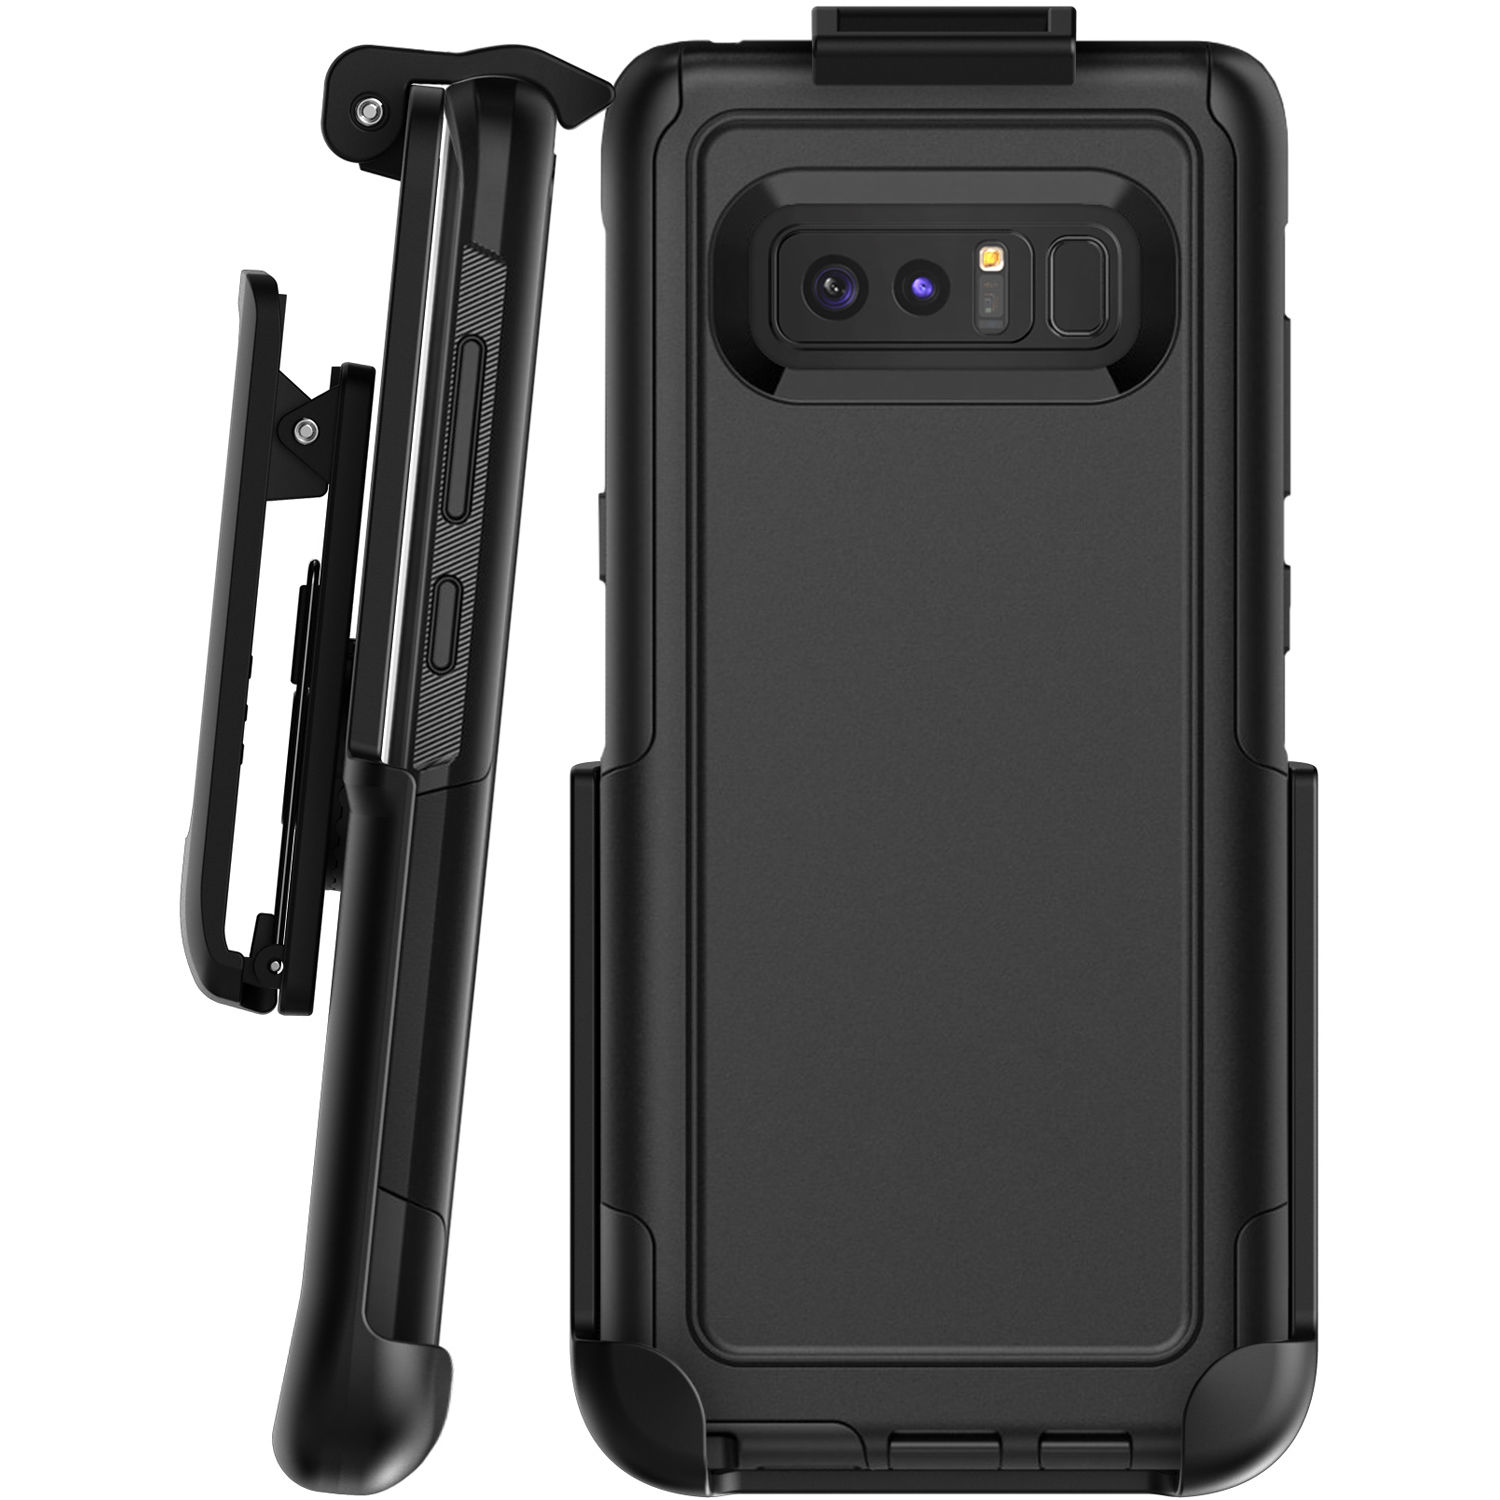 100% authentic 51280 8eb7c Encased Belt Clip Holster for Galaxy Note8 OtterBox Commuter Case